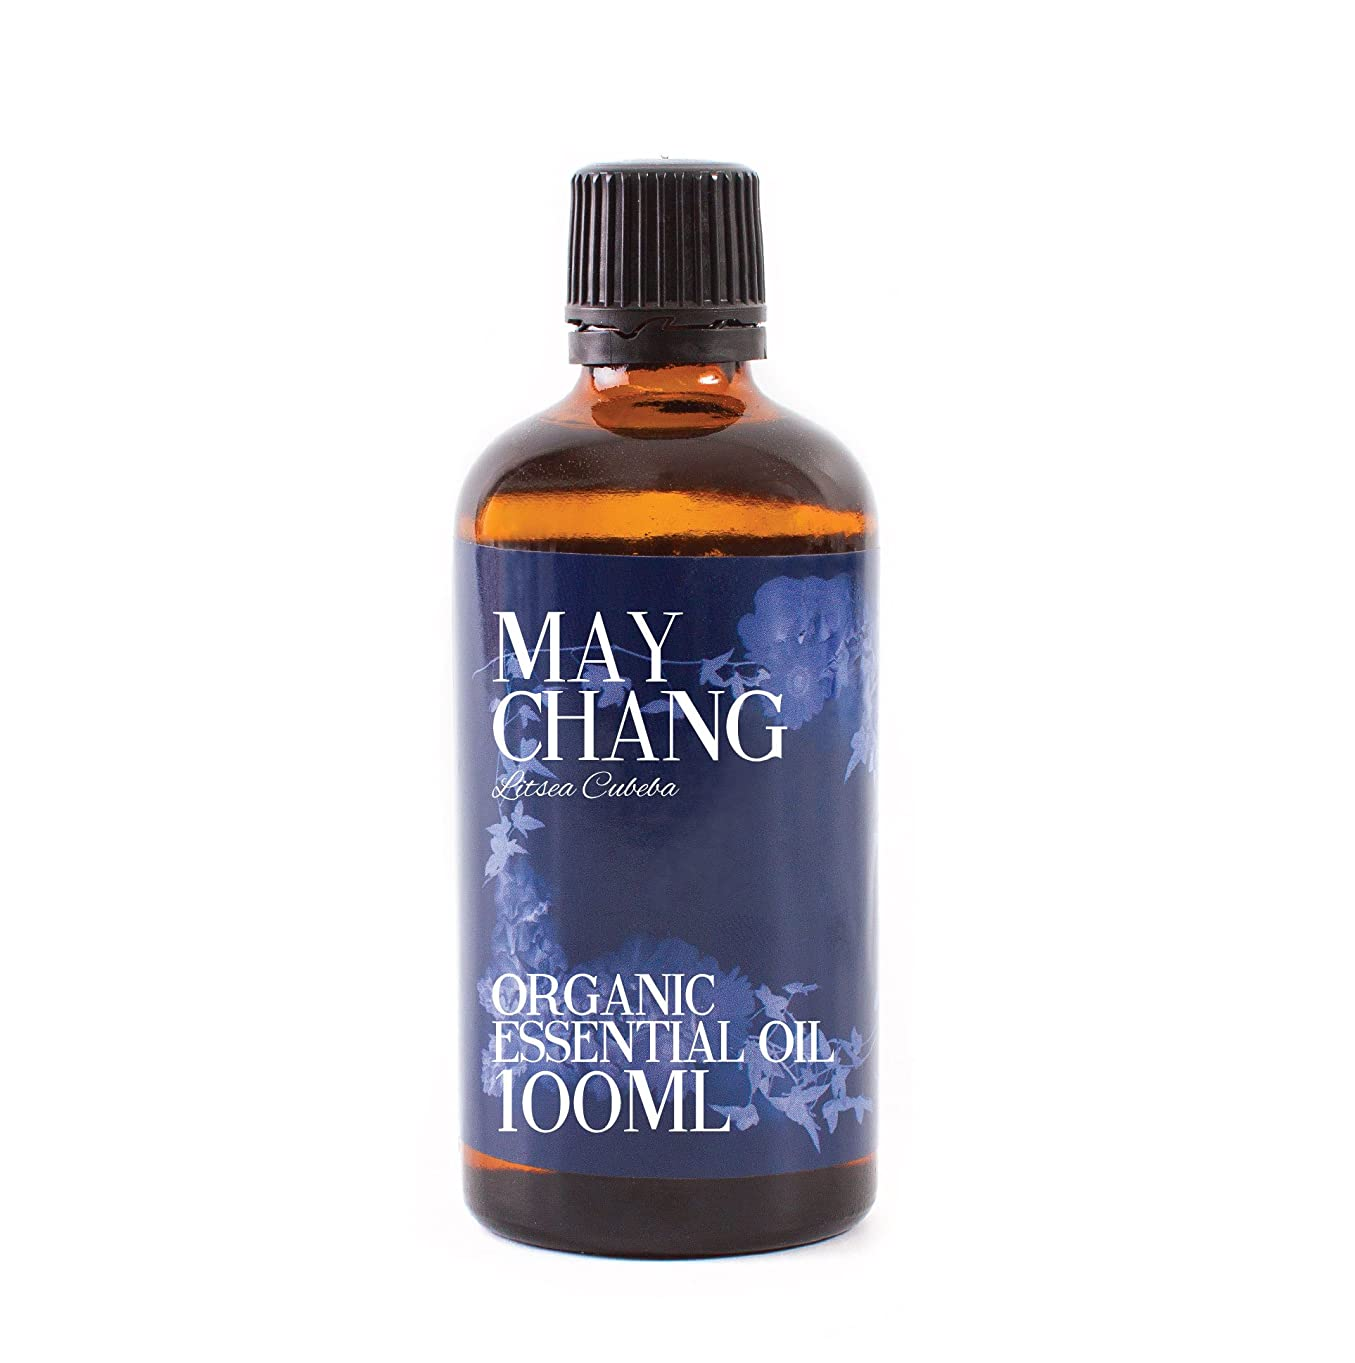 違反する寸前愛Mystic Moments | Litsea Cubeba (May Chang) Organic Essential Oil - 100ml - 100% Pure